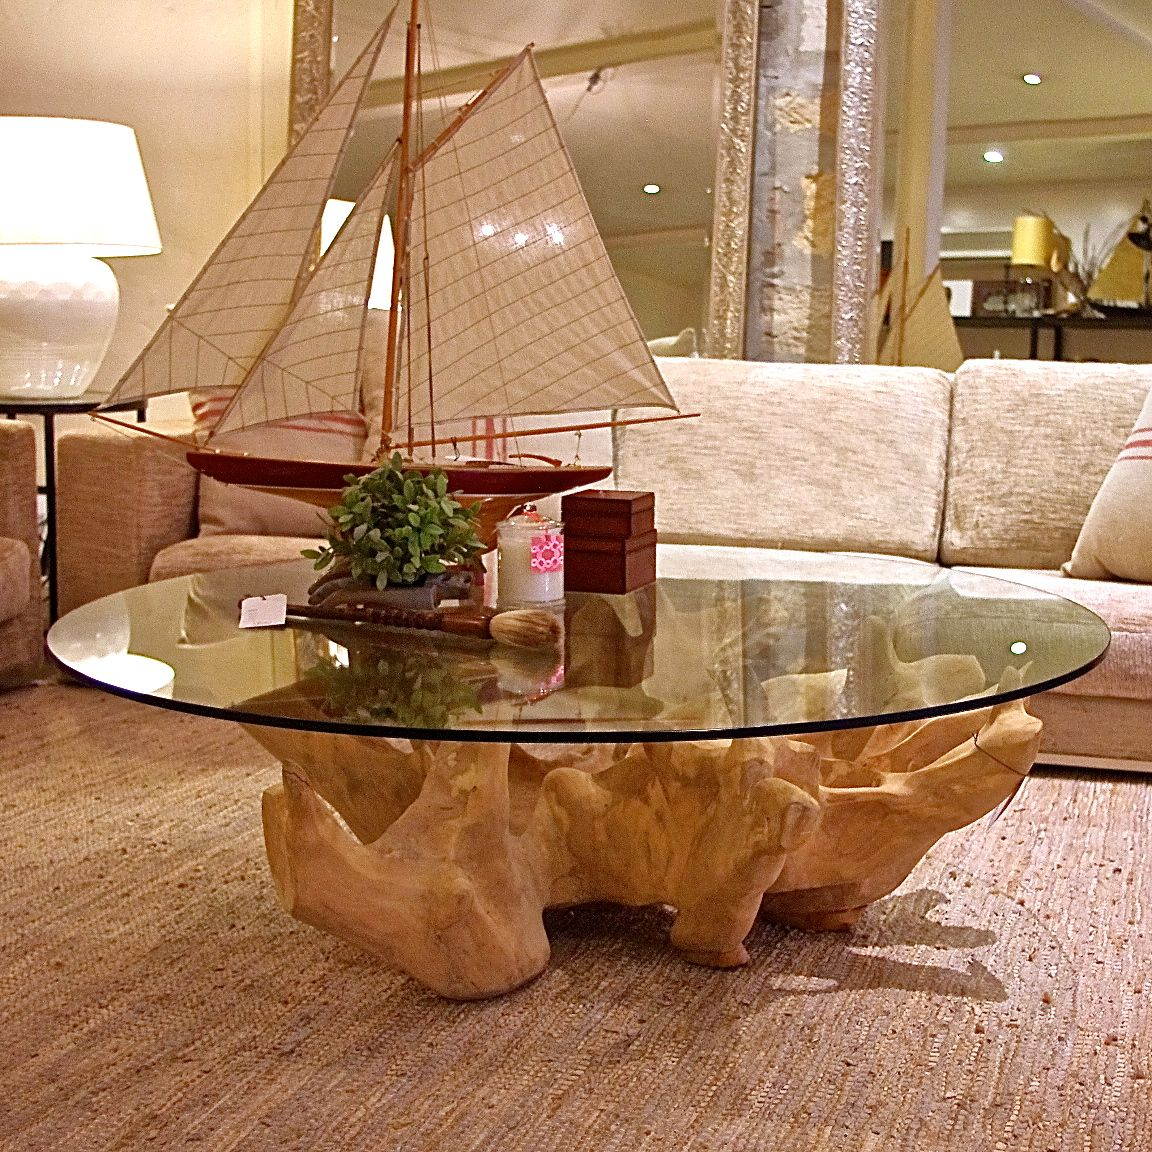 Tree Trunk Table This Could Be Cool With My Glass I Have